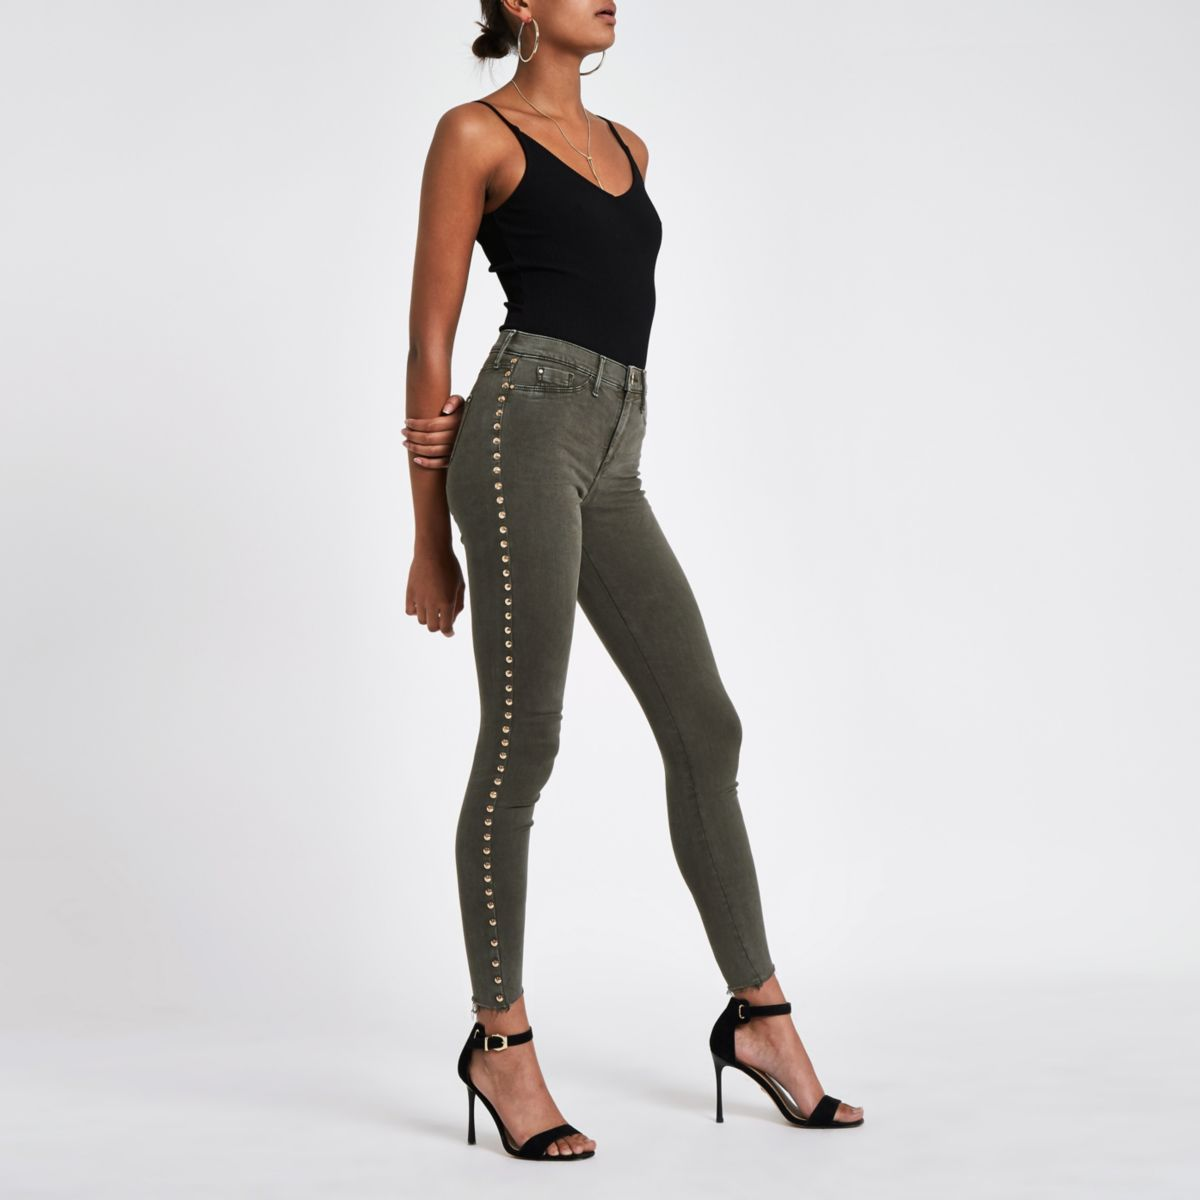 Khaki Molly stud side jeggings